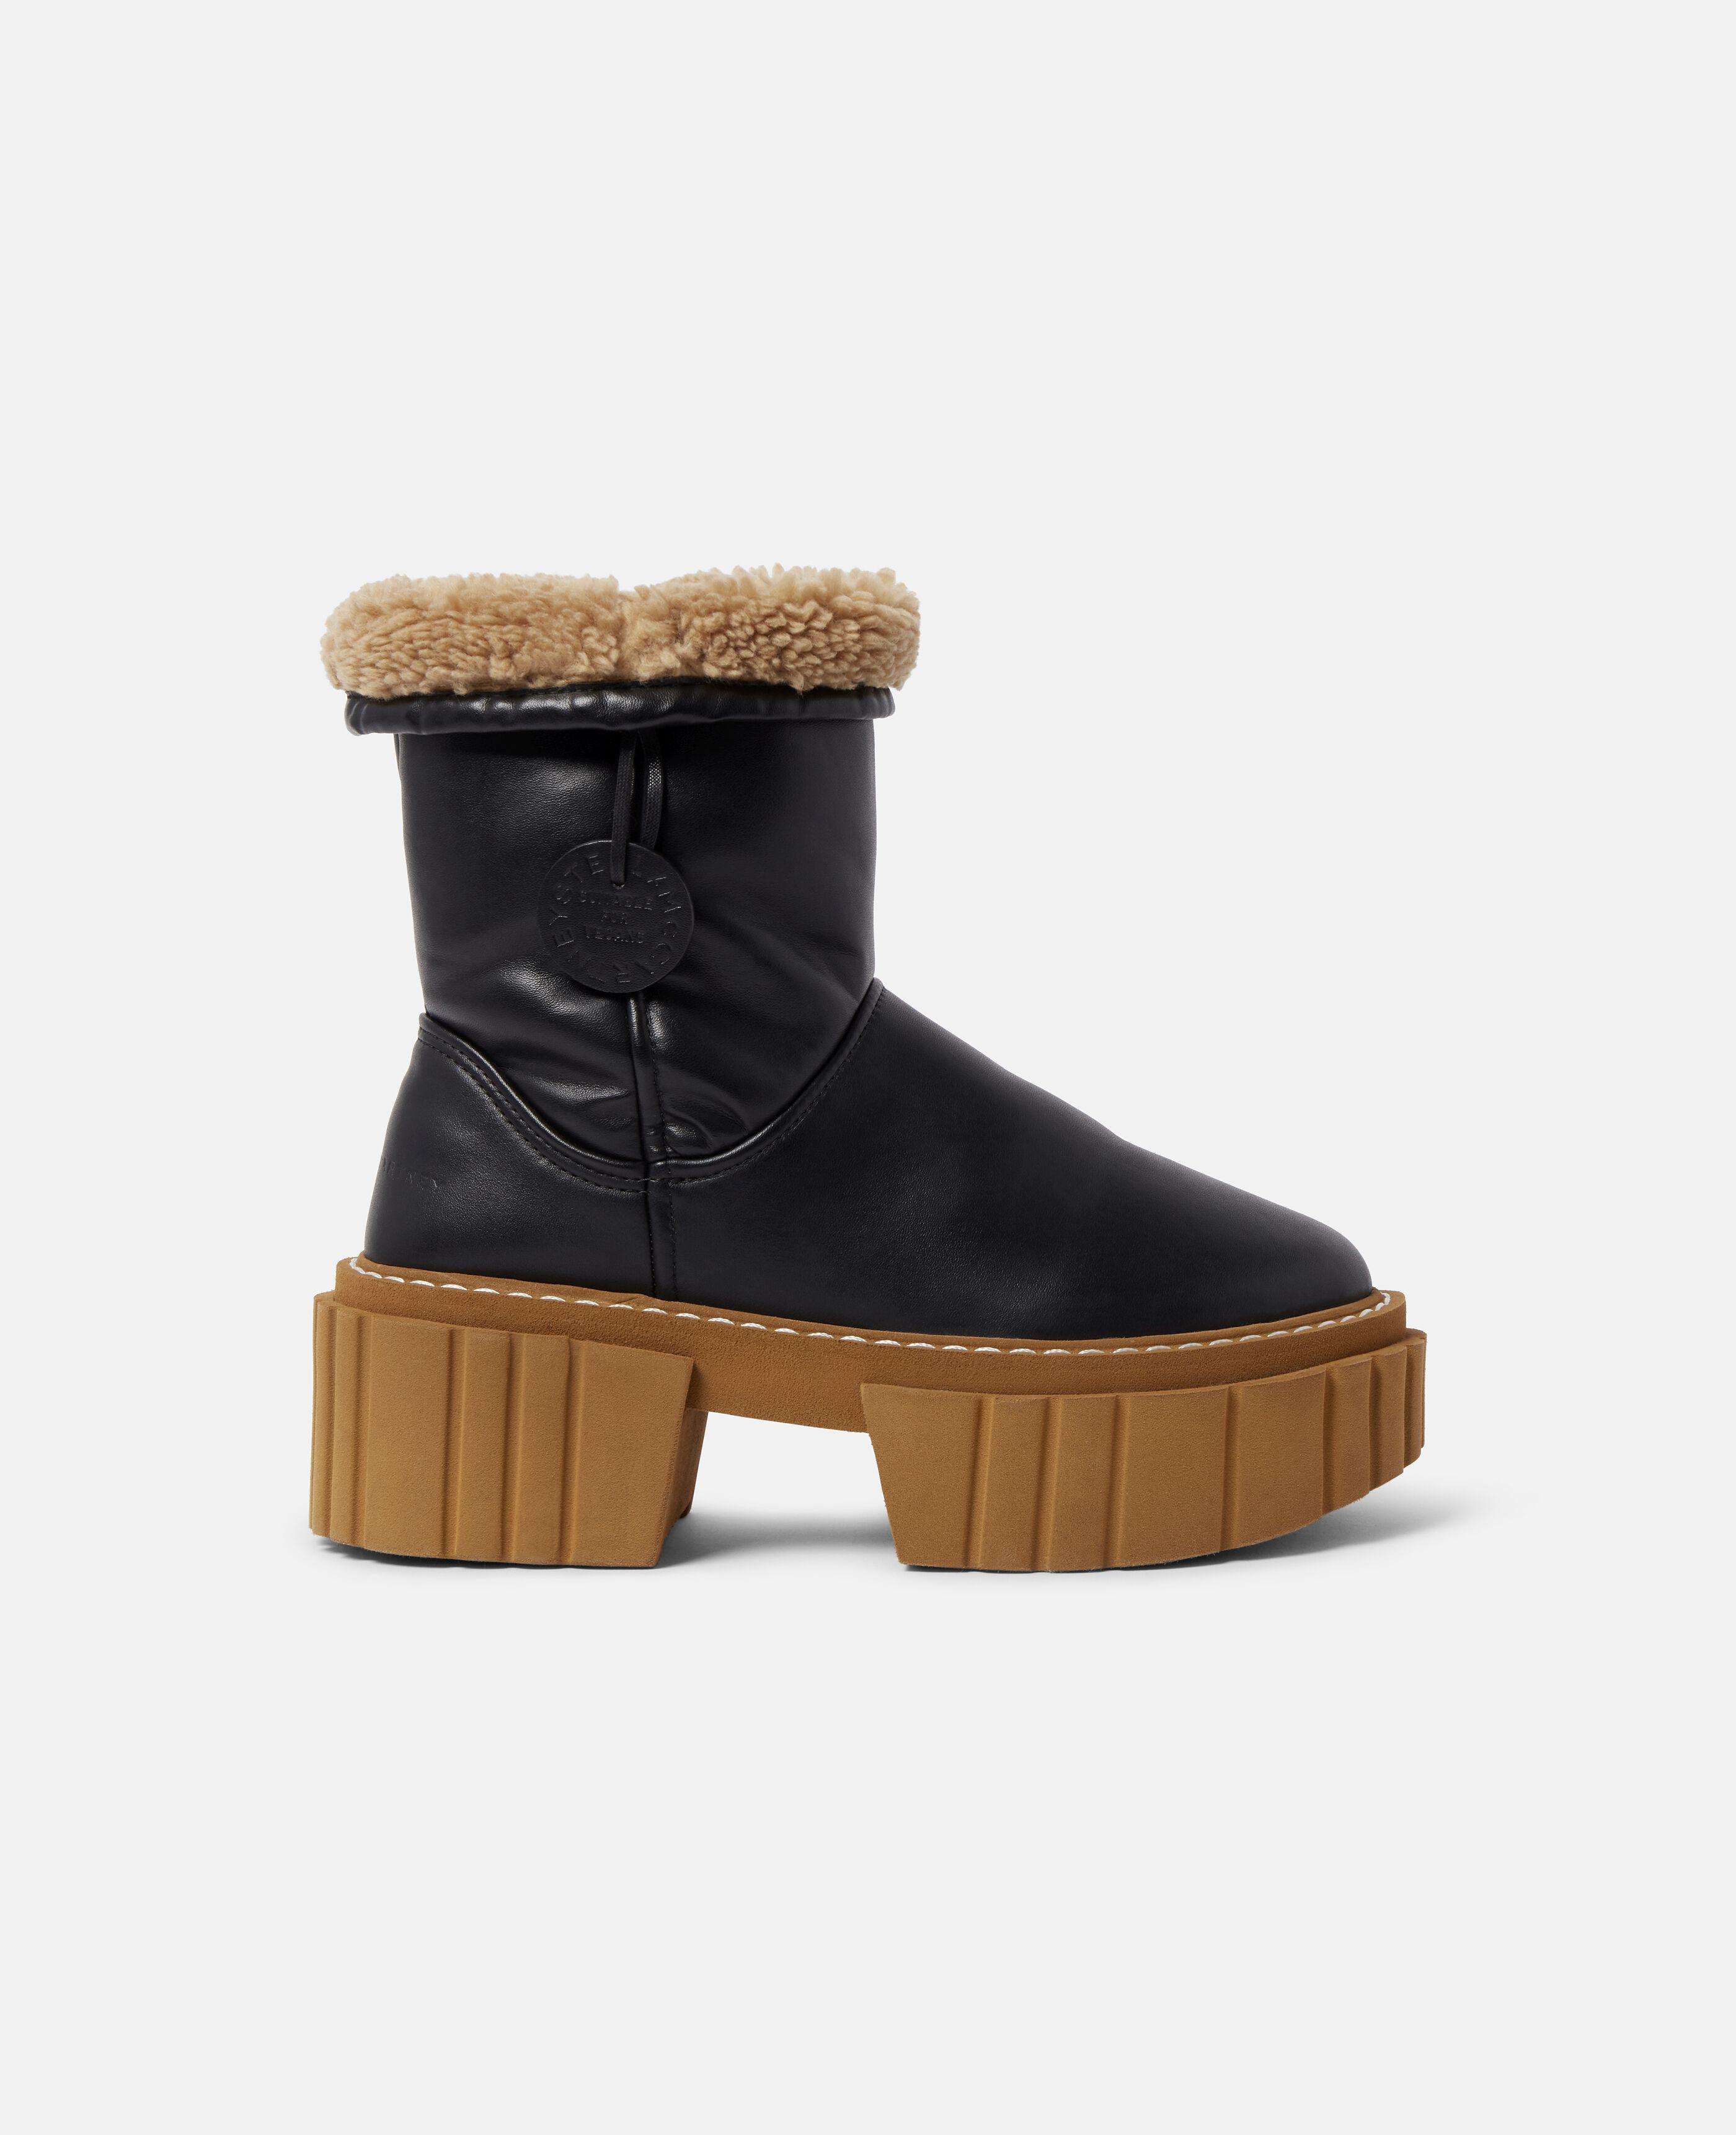 Emilie Teddy Boots